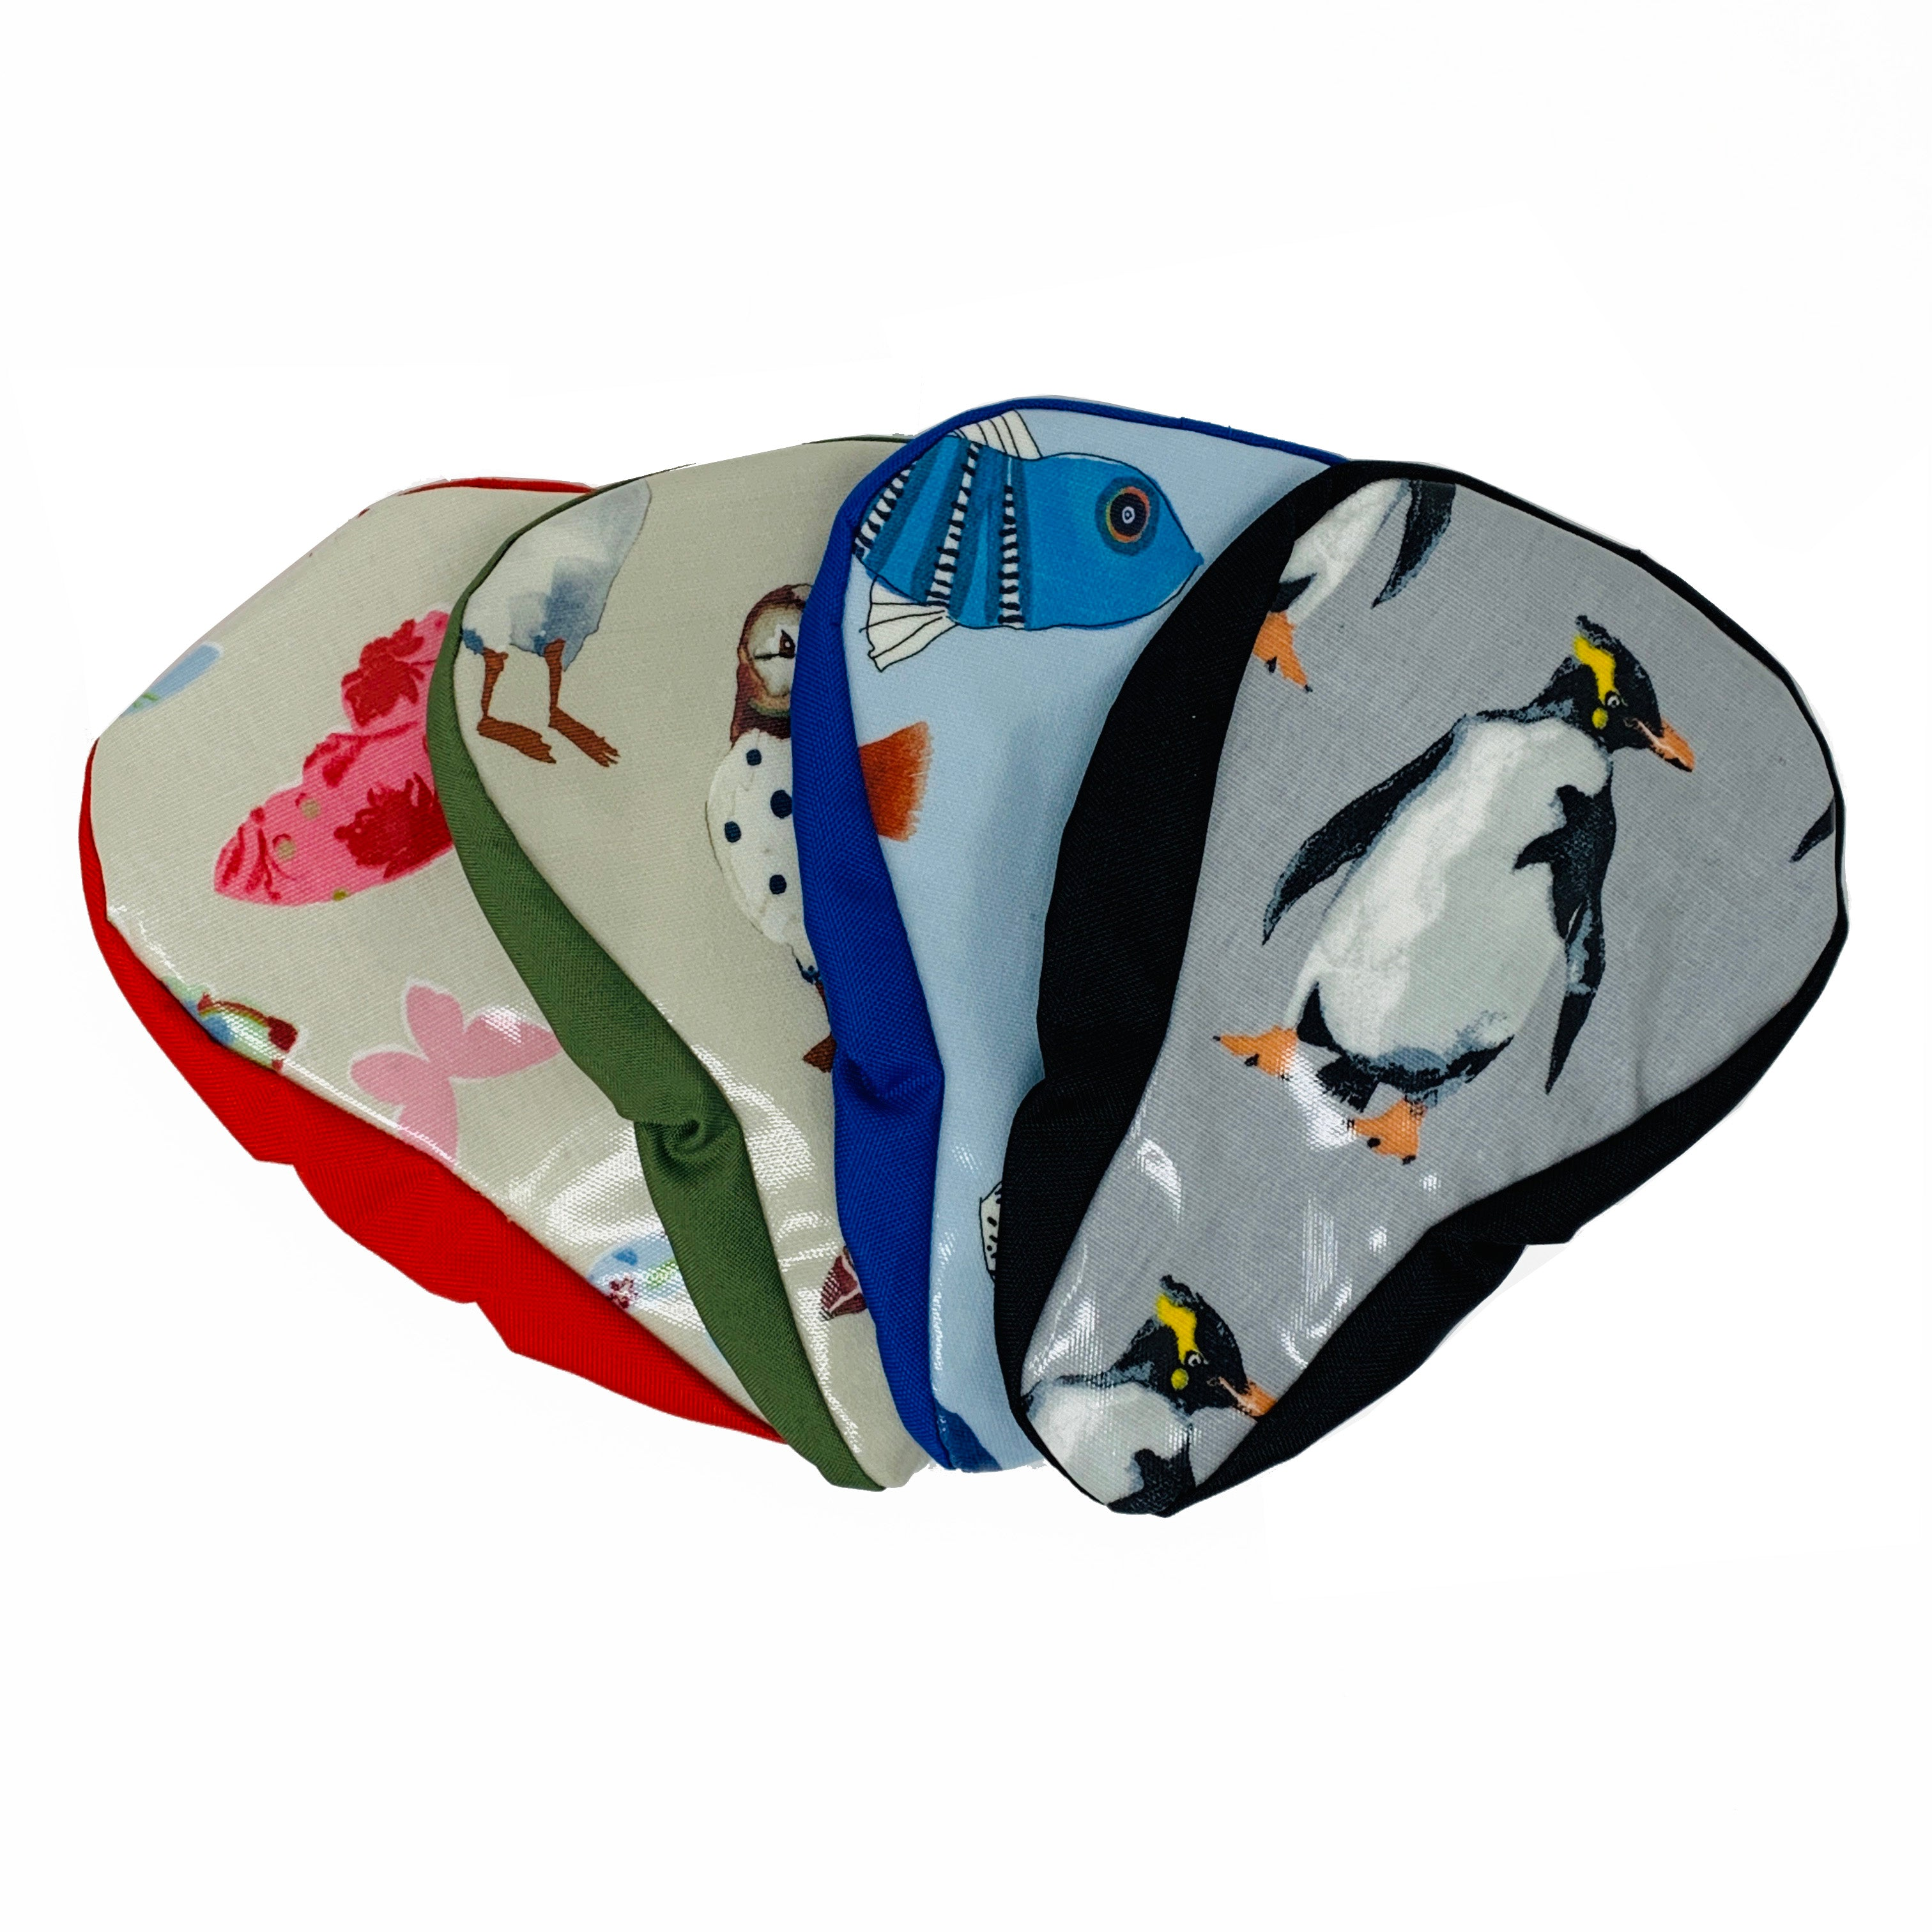 Penguin - Kids Waterproof Saddle Cover